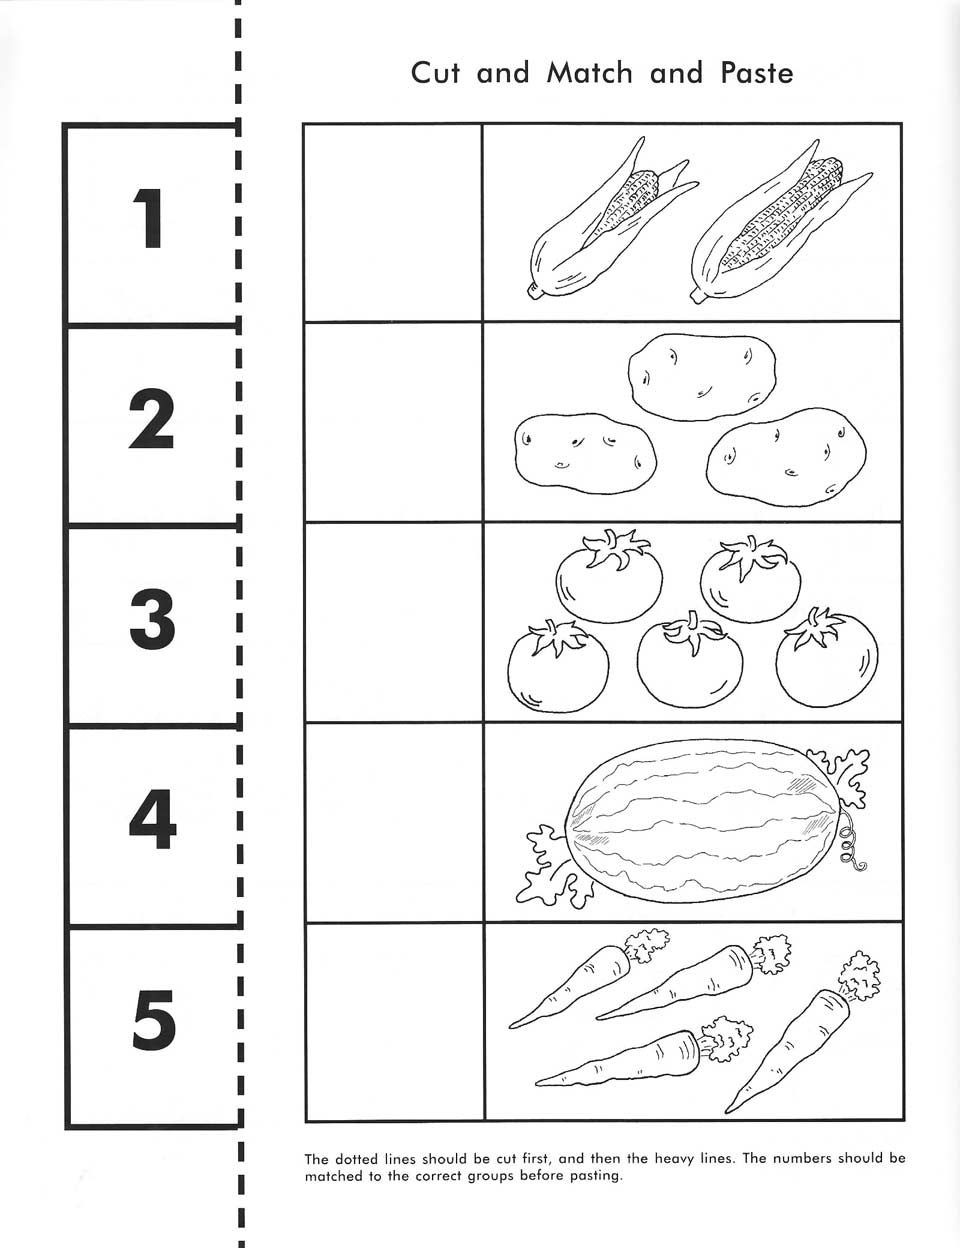 Printable Cutting Worksheets for Preschoolers Rod & Staff Preschool Workbooks